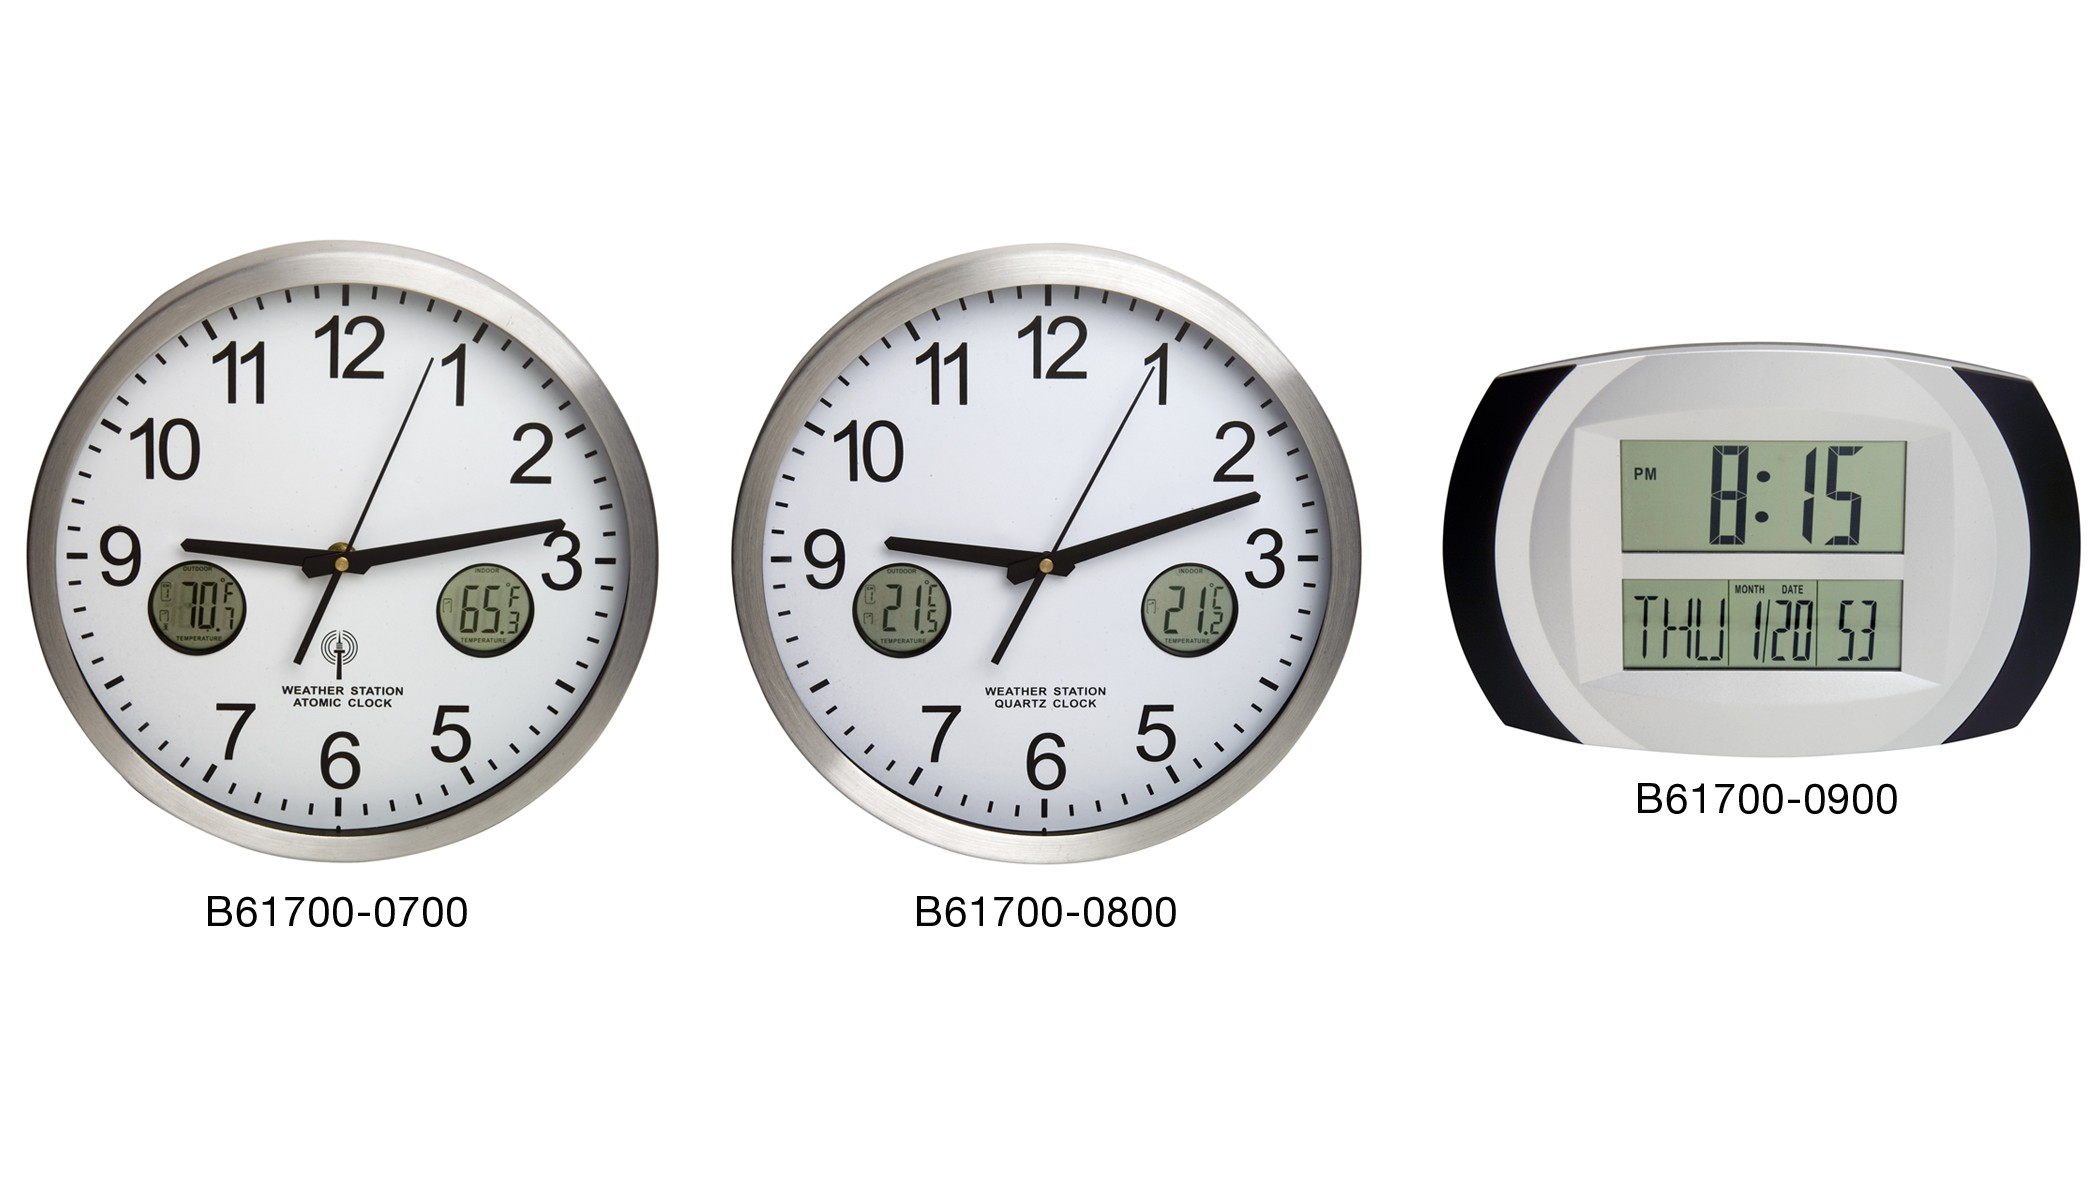 H-B DURAC Multi-Function Digital Clocks